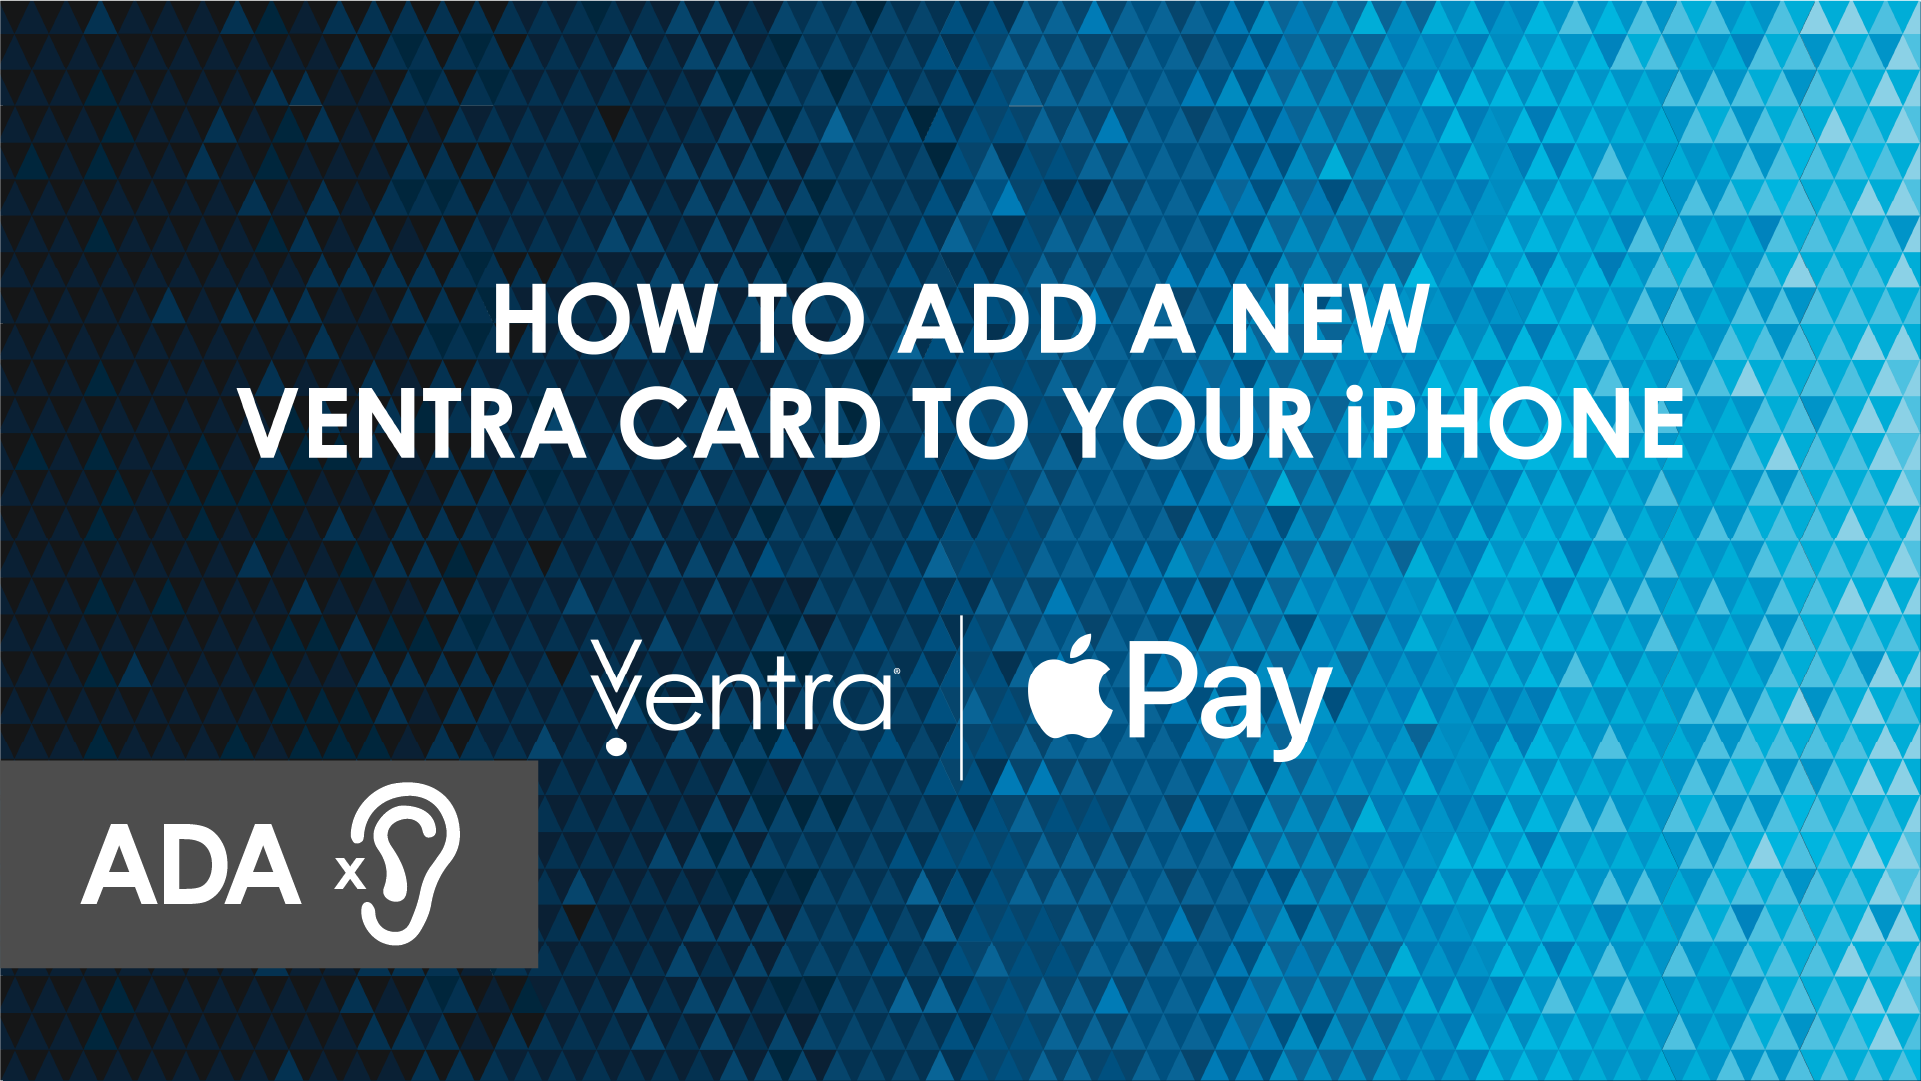 How to add a new Ventra Card to your iPhone